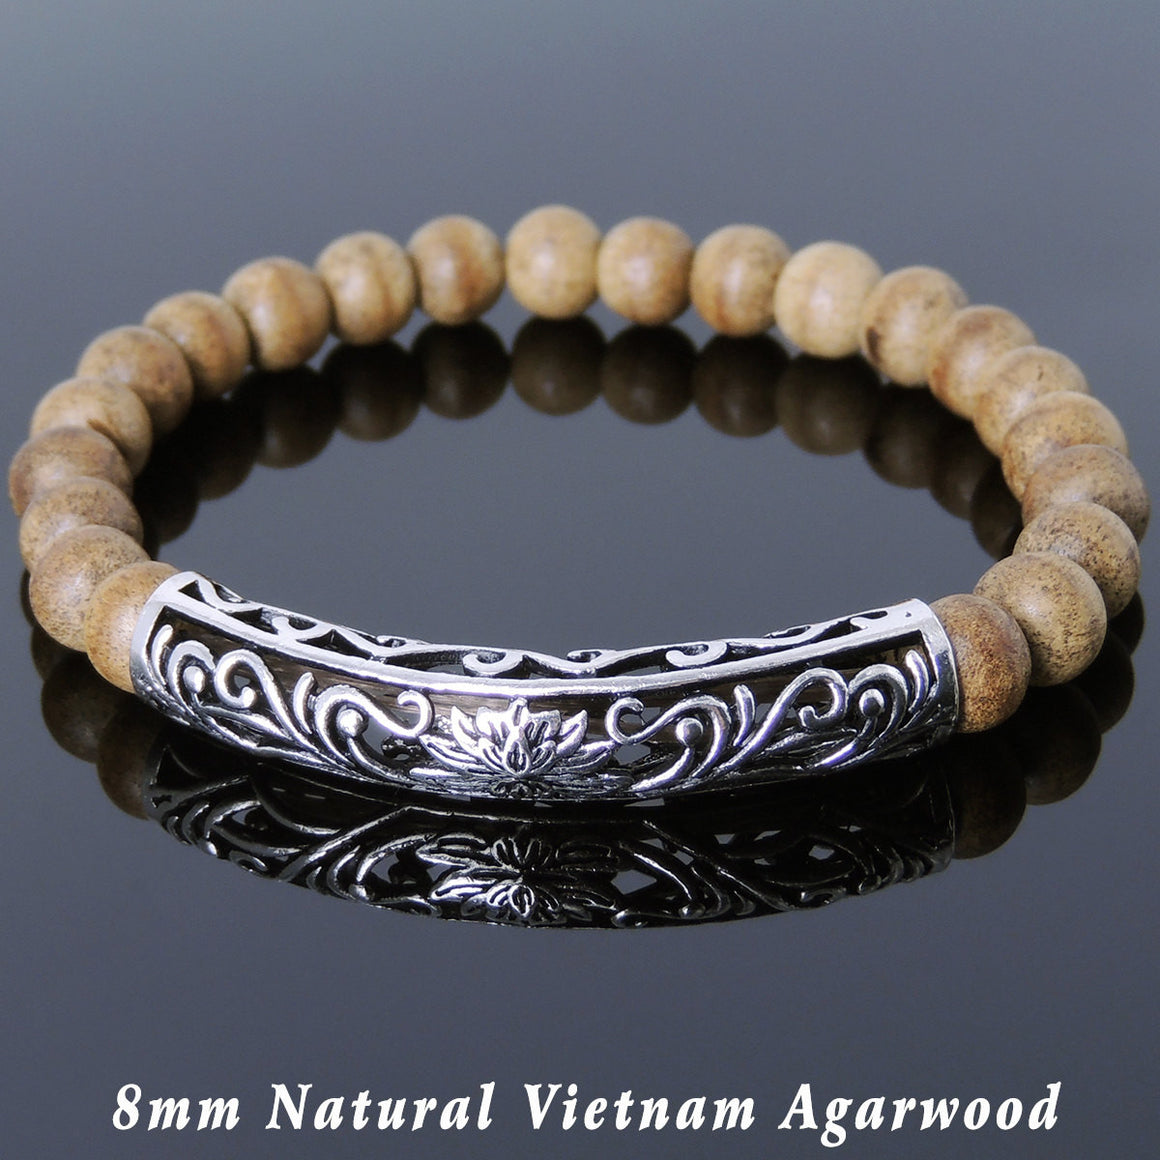 8mm Vietnam Agarwood Bracelet for Prayer & Meditation with S925 Sterling Silver Lucky Lotus Charm - Handmade by Gem & Silver BR910